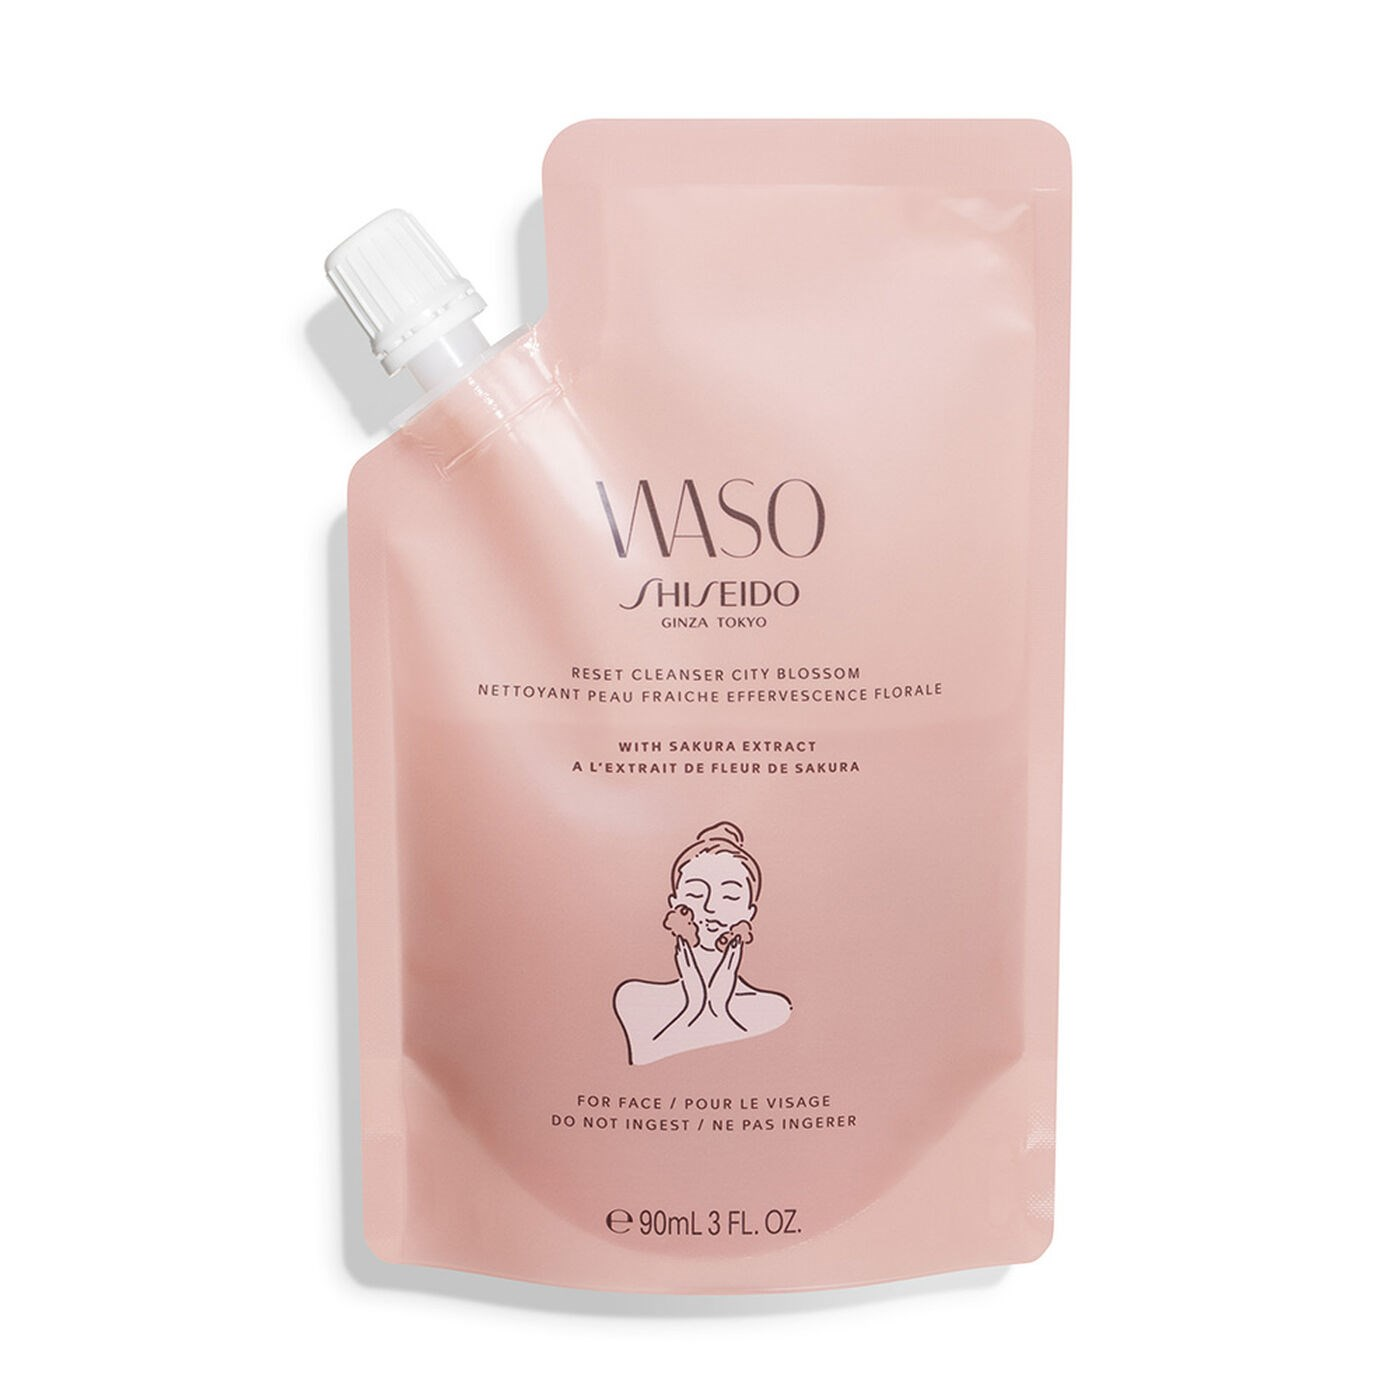 WASO RESET CLEANSER CITY BLOSSOM 1